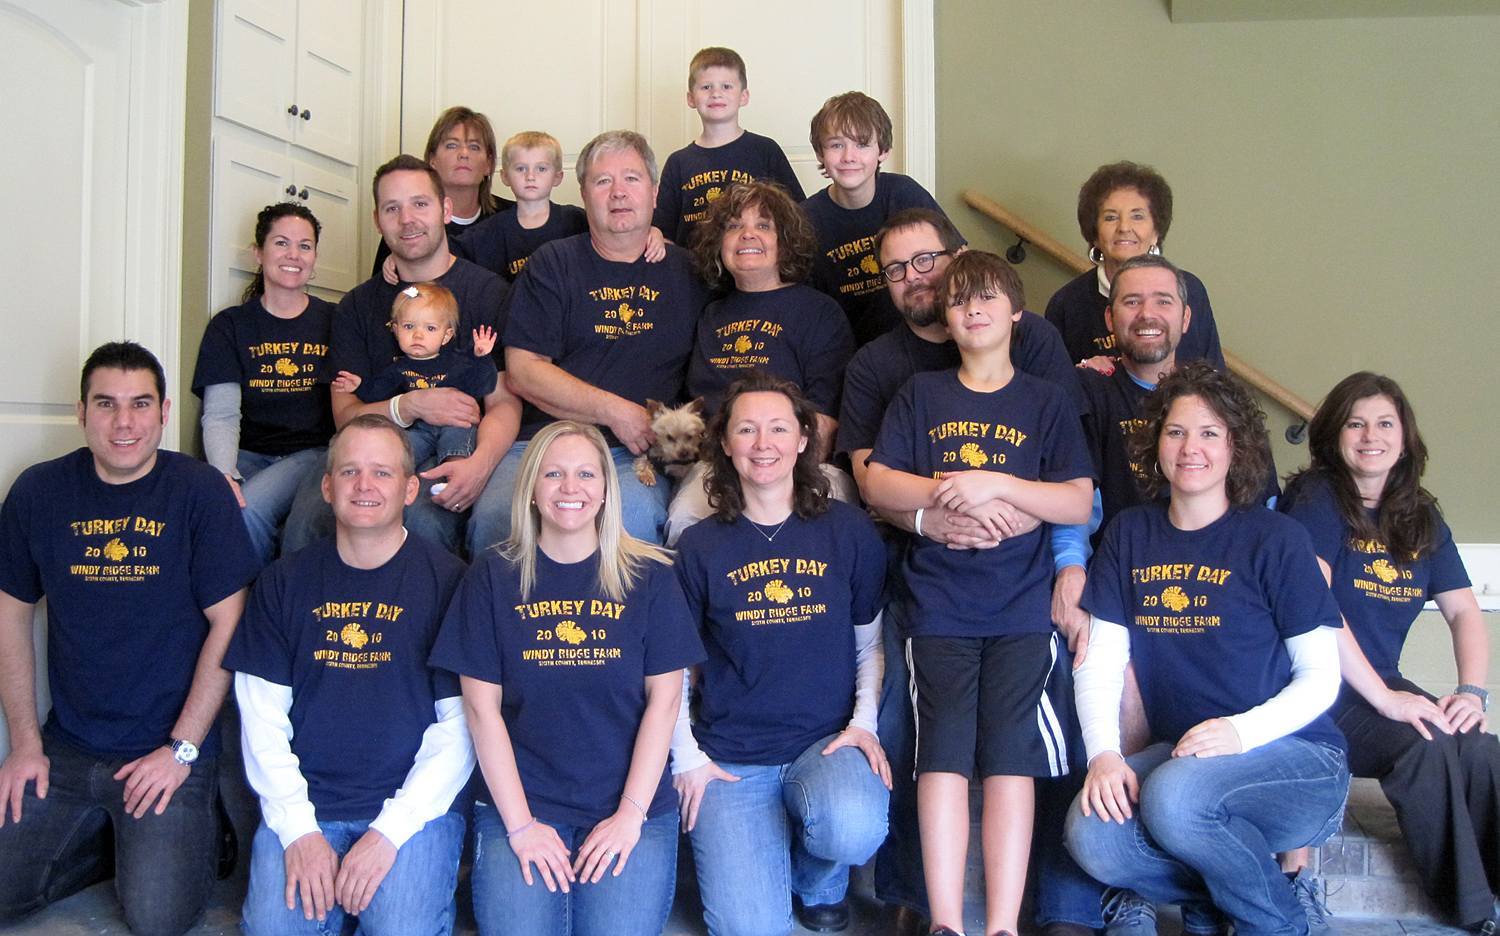 Design t shirt for group - Turkey Day T Shirt Photo